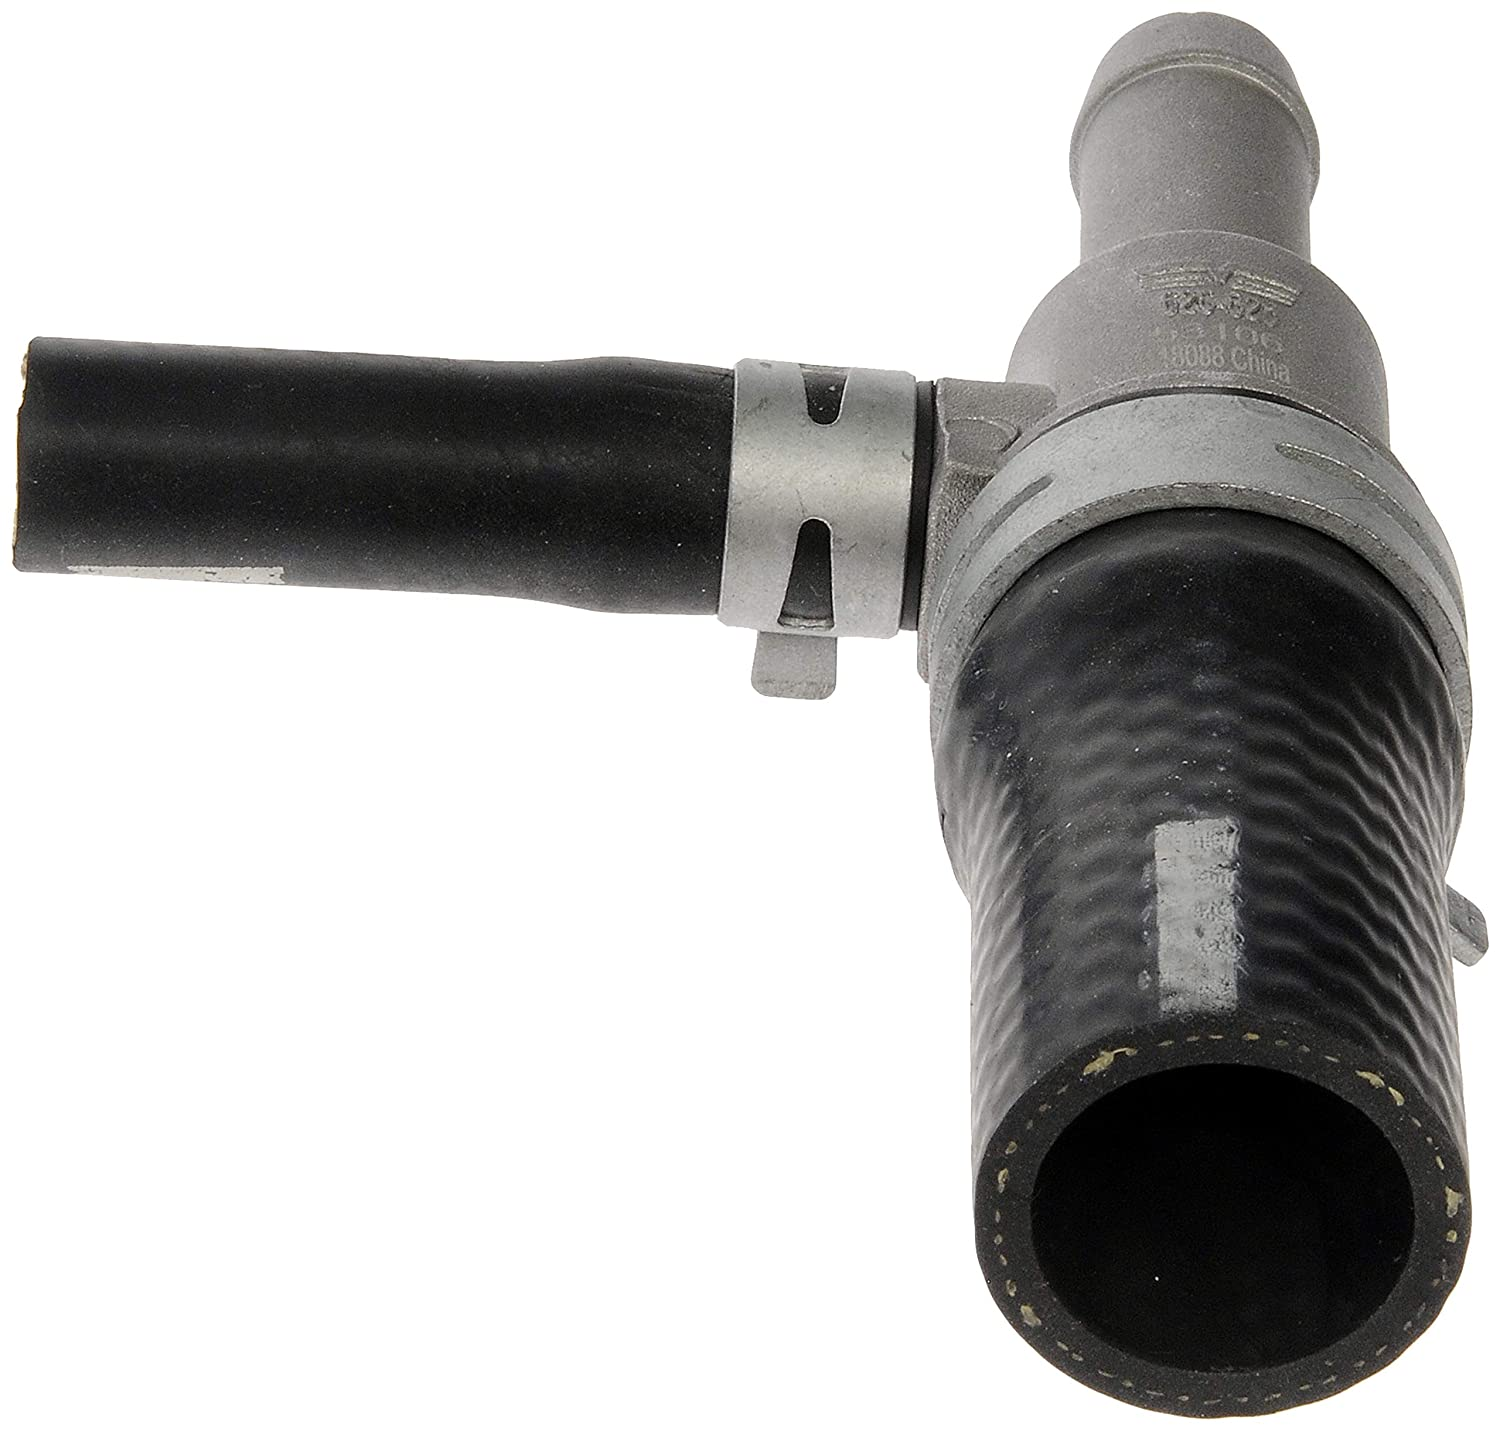 Dorman 626-625 Engine Heater Hose Assembly for Select Ford Fusion Models